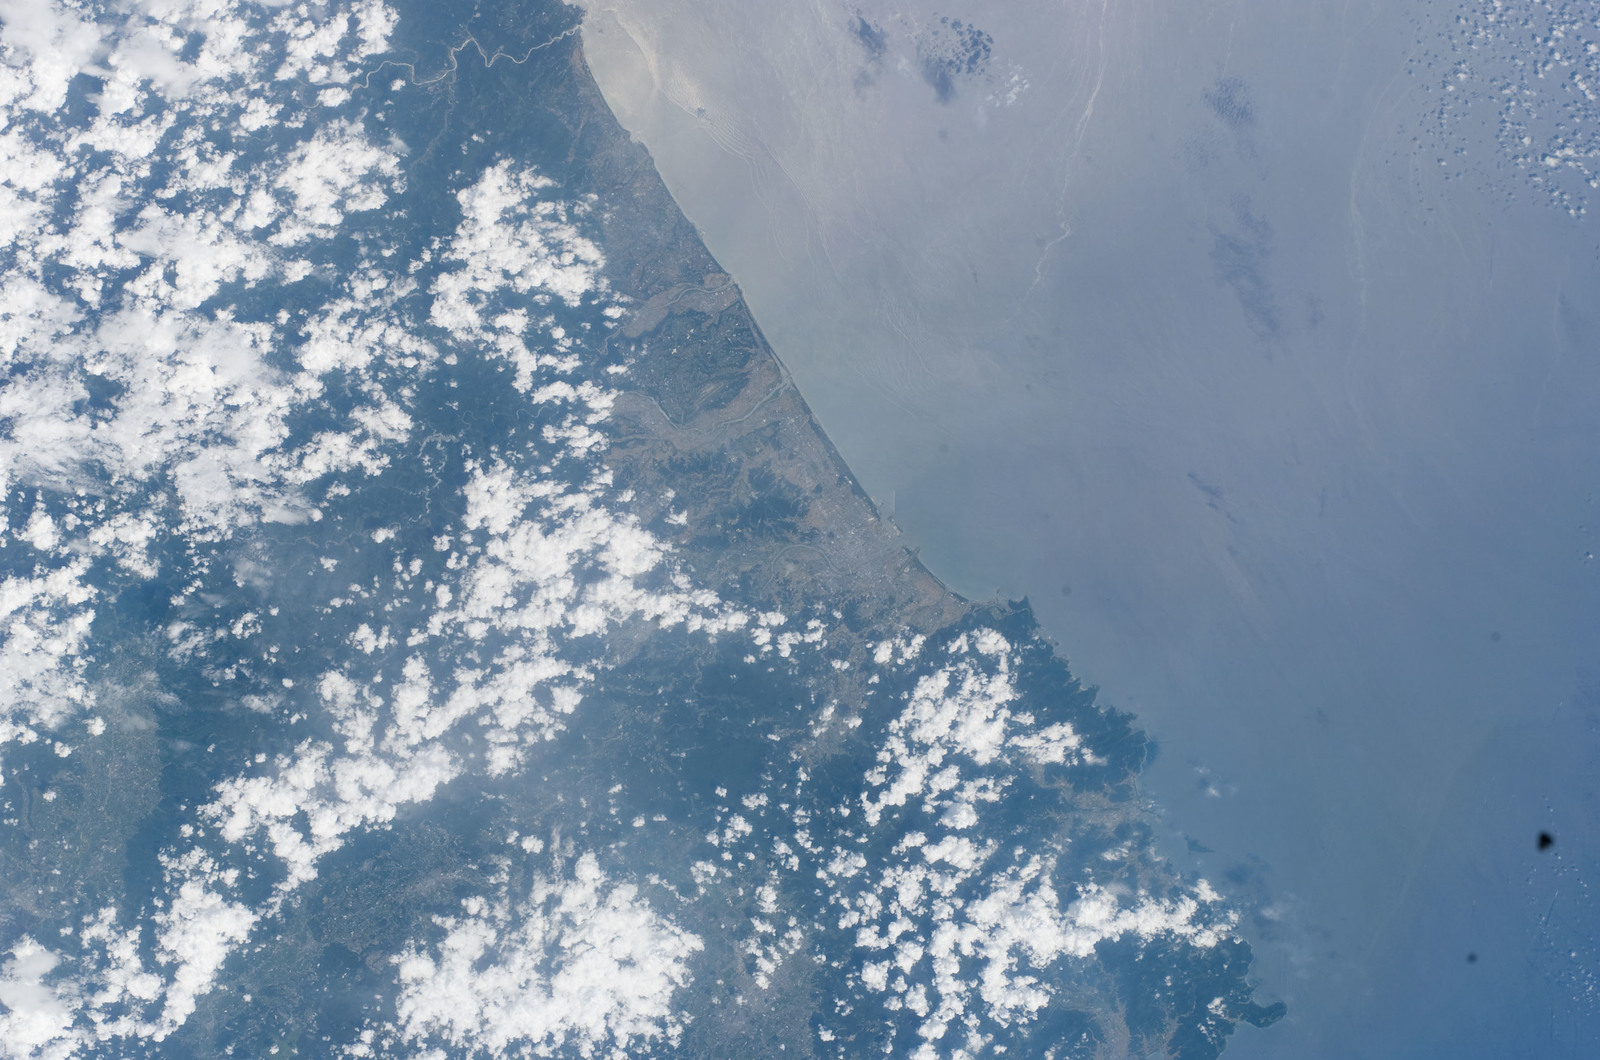 S114E7948 - STS-114 - Earth Observations taken by the STS-114 crew